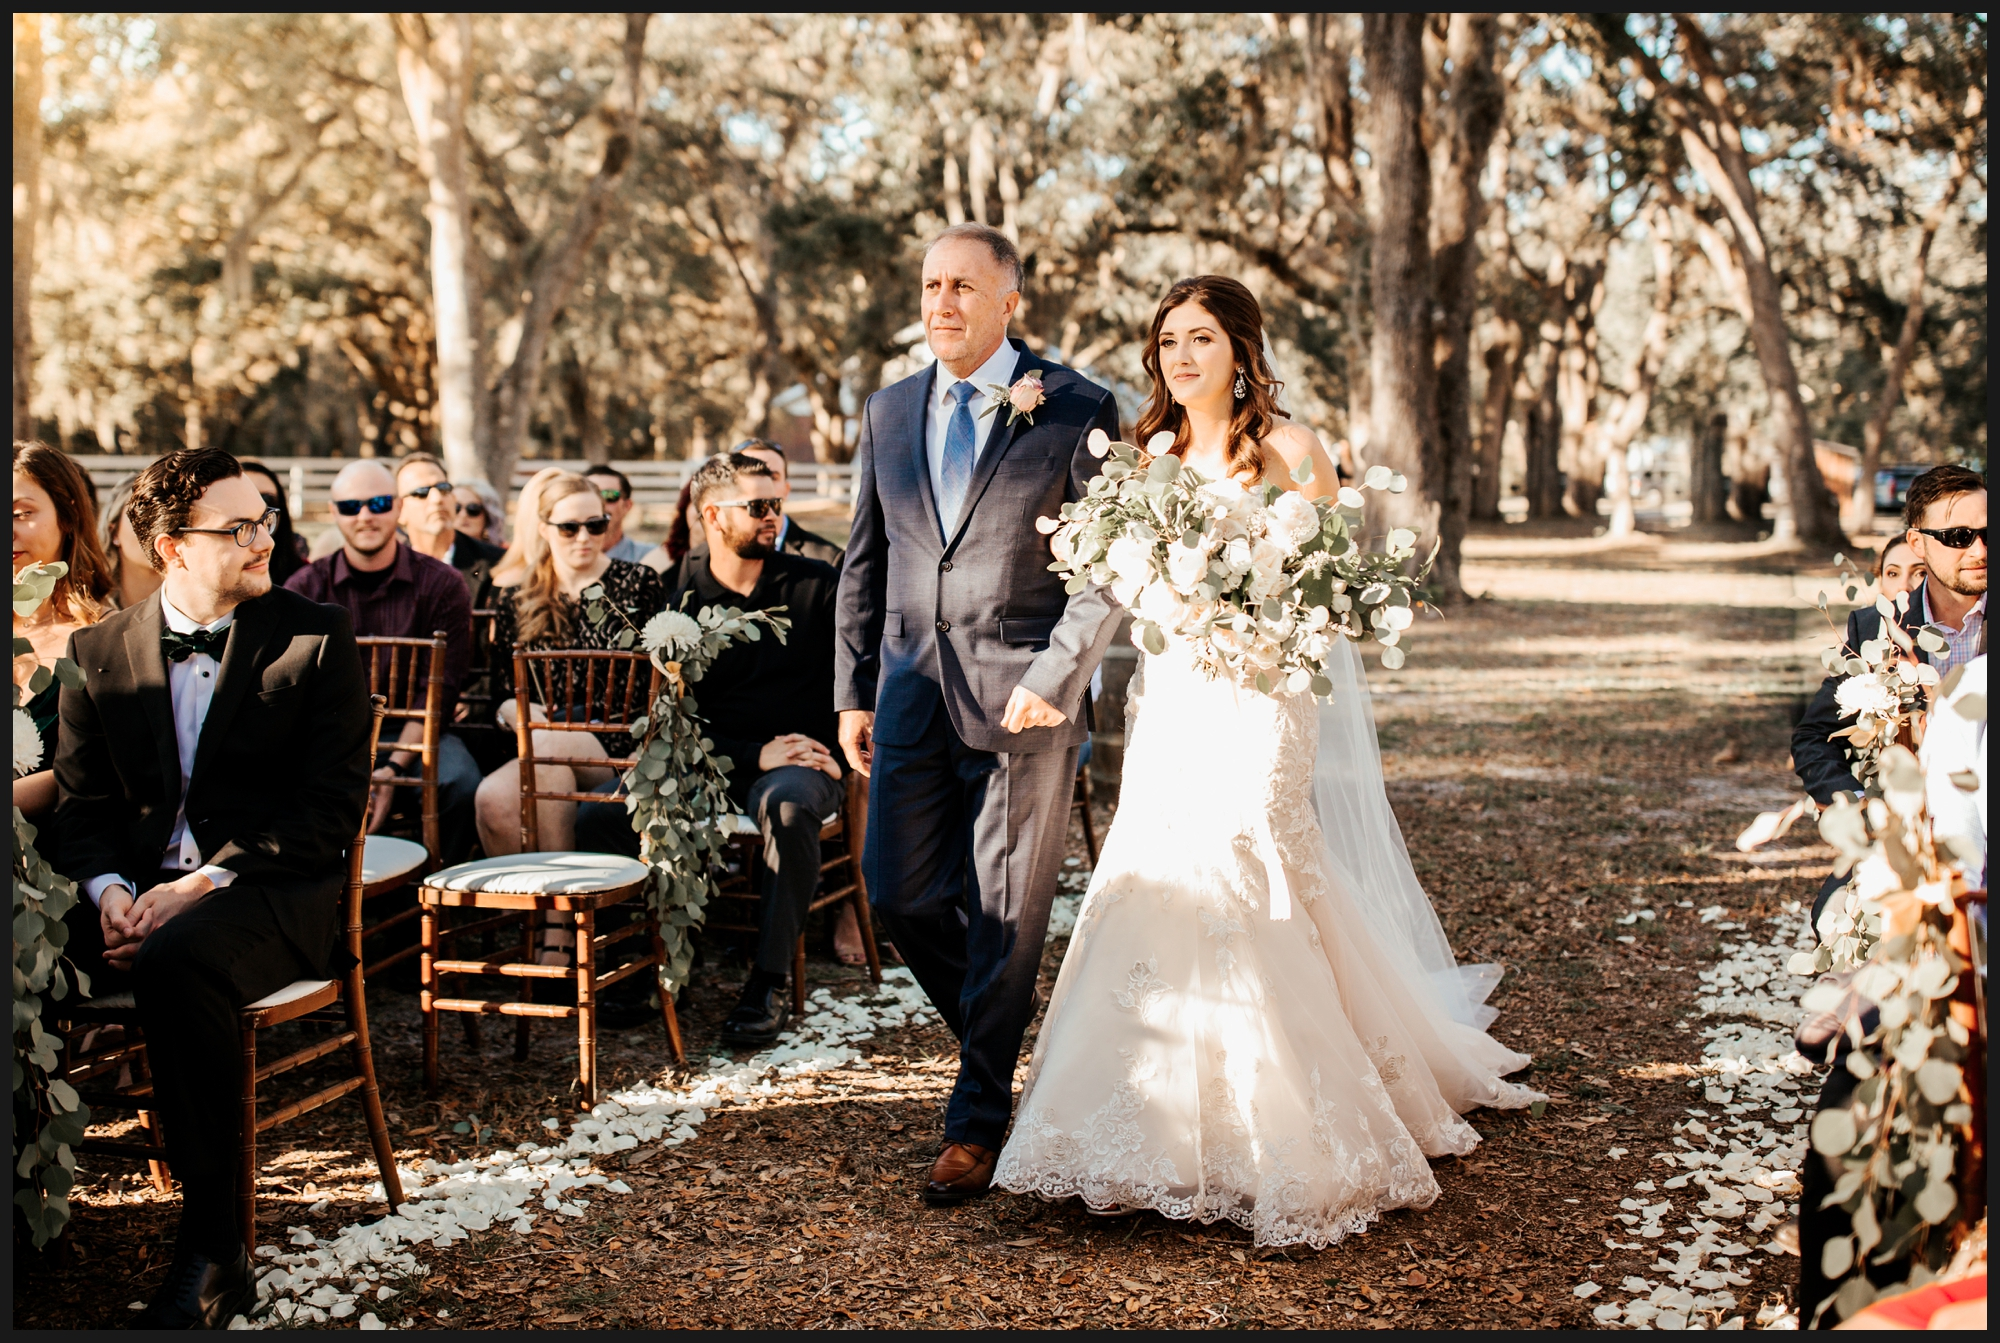 Orlando-Wedding-Photographer-destination-wedding-photographer-florida-wedding-photographer-bohemian-wedding-photographer_1080.jpg